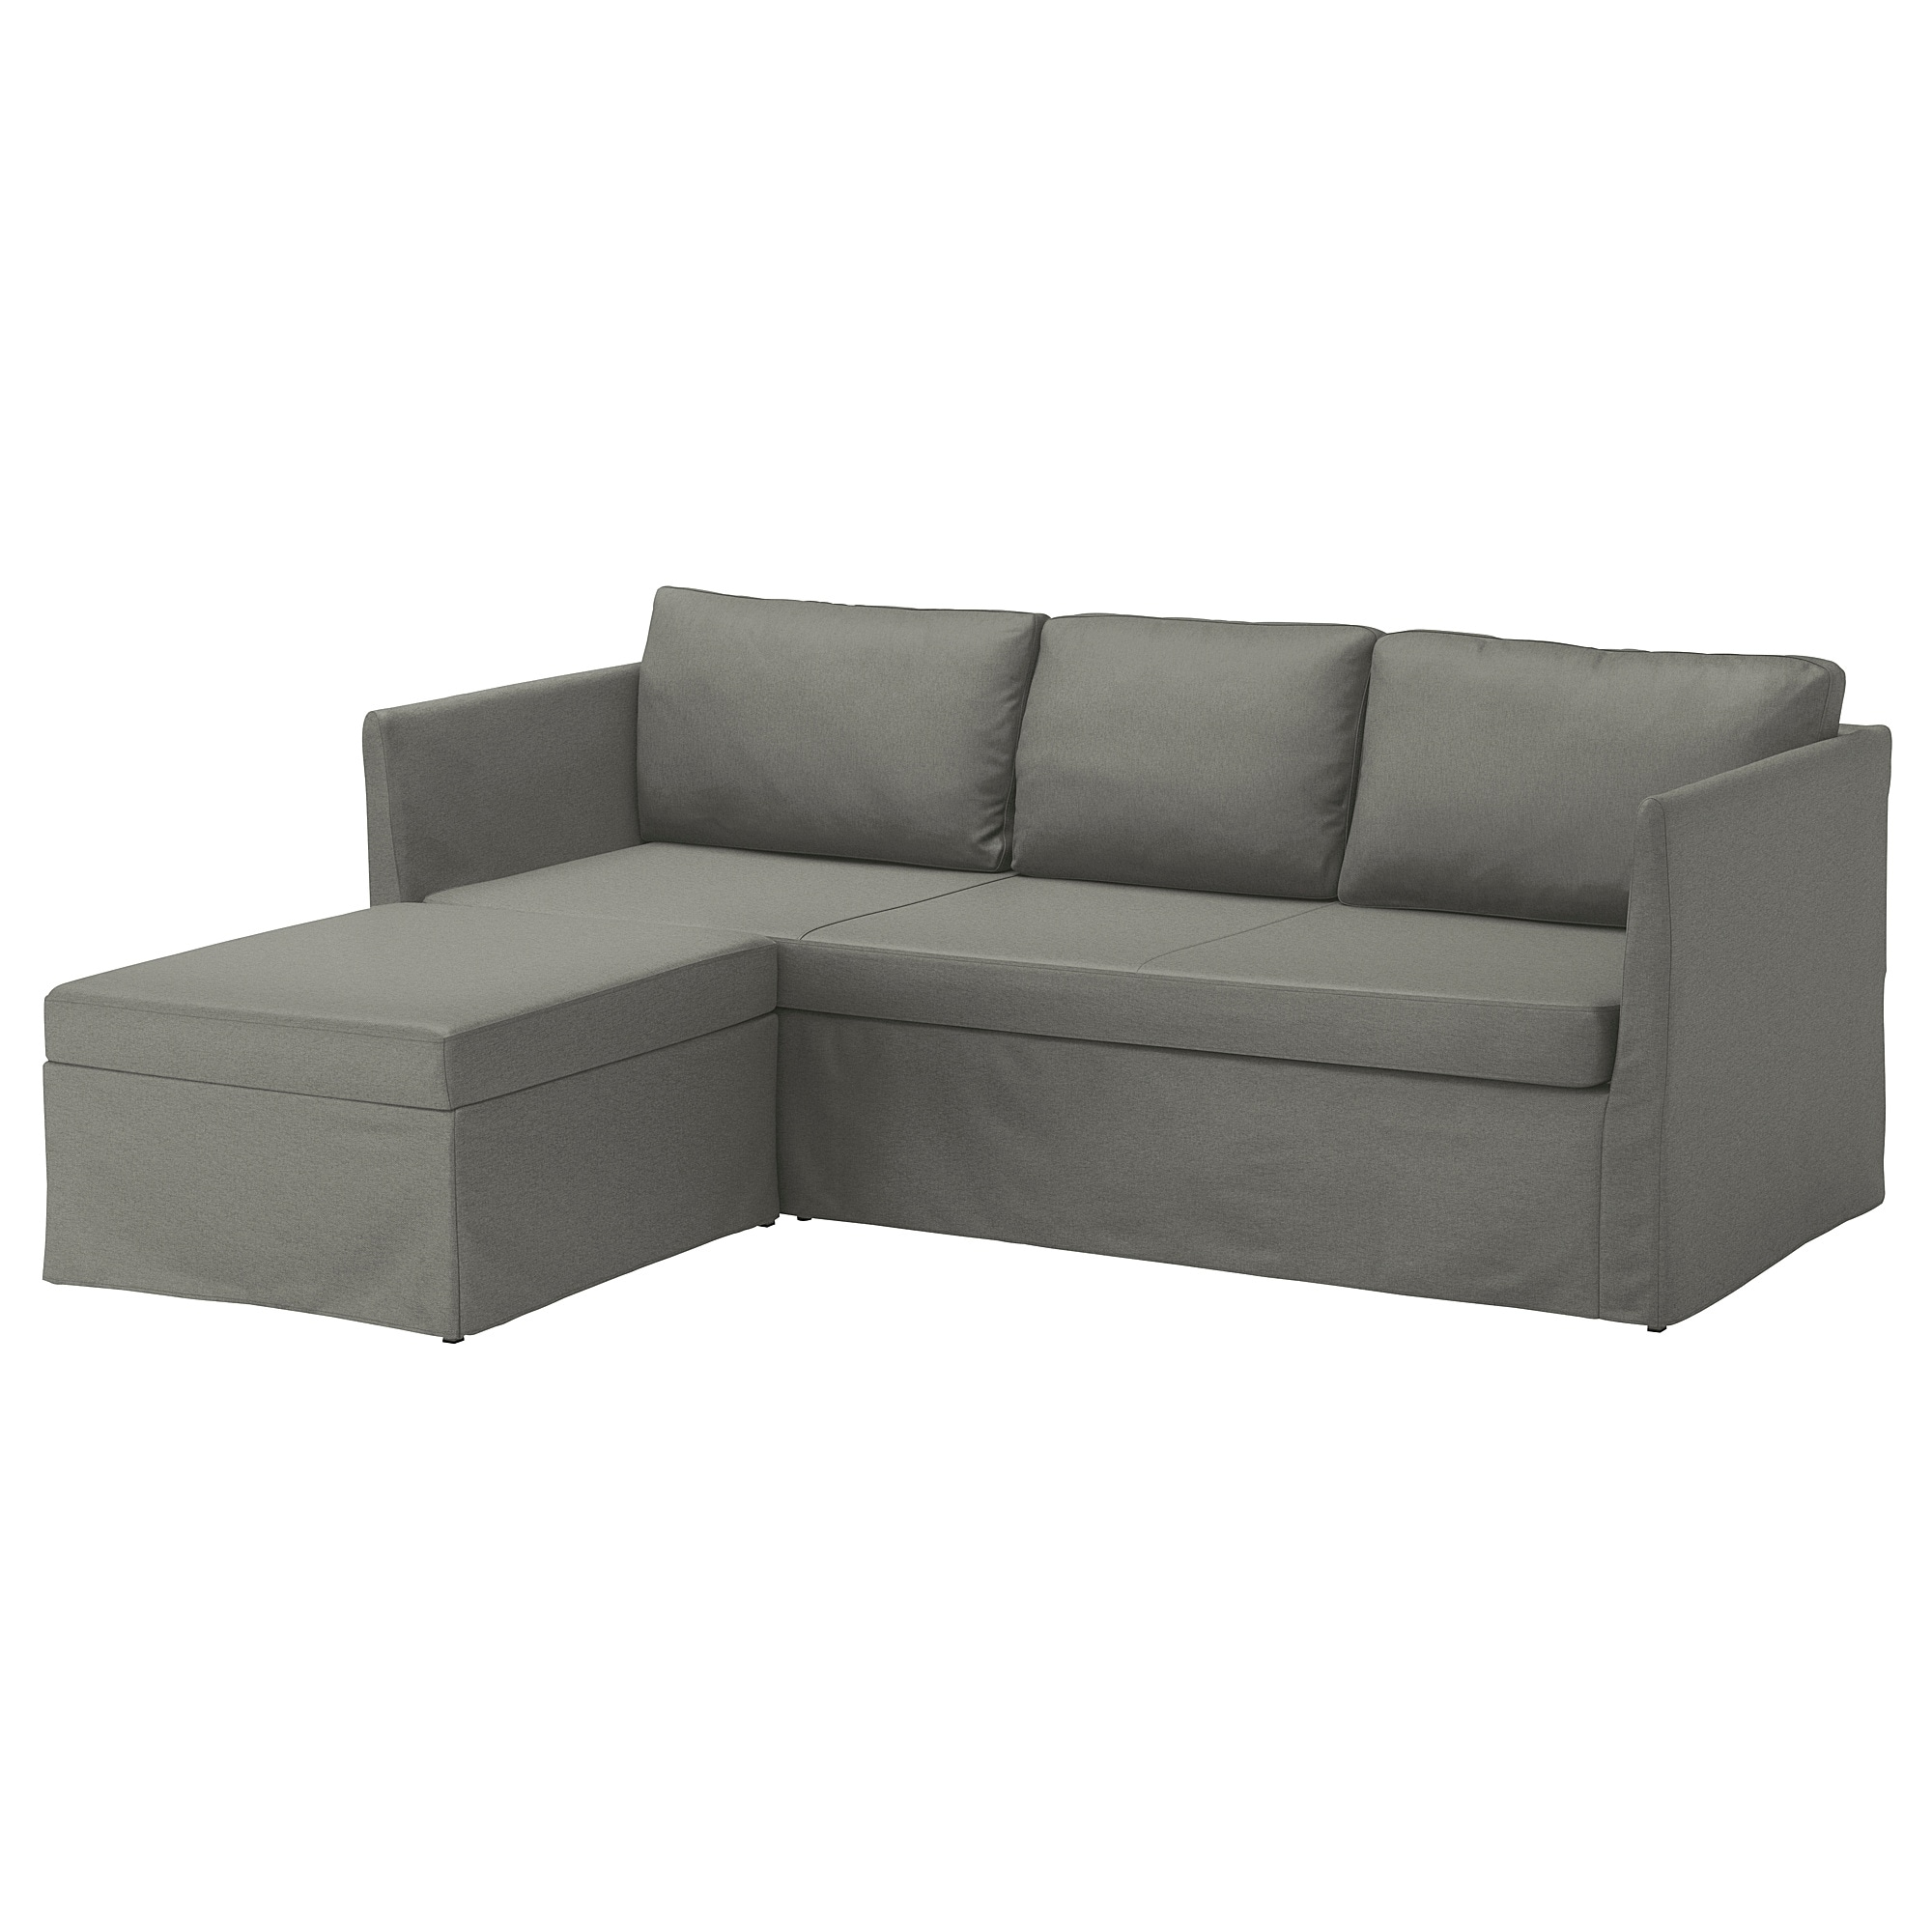 IKEA BRÅTHULT corner sofa-bed You sit comfortably thanks to the resilient  foam and springy